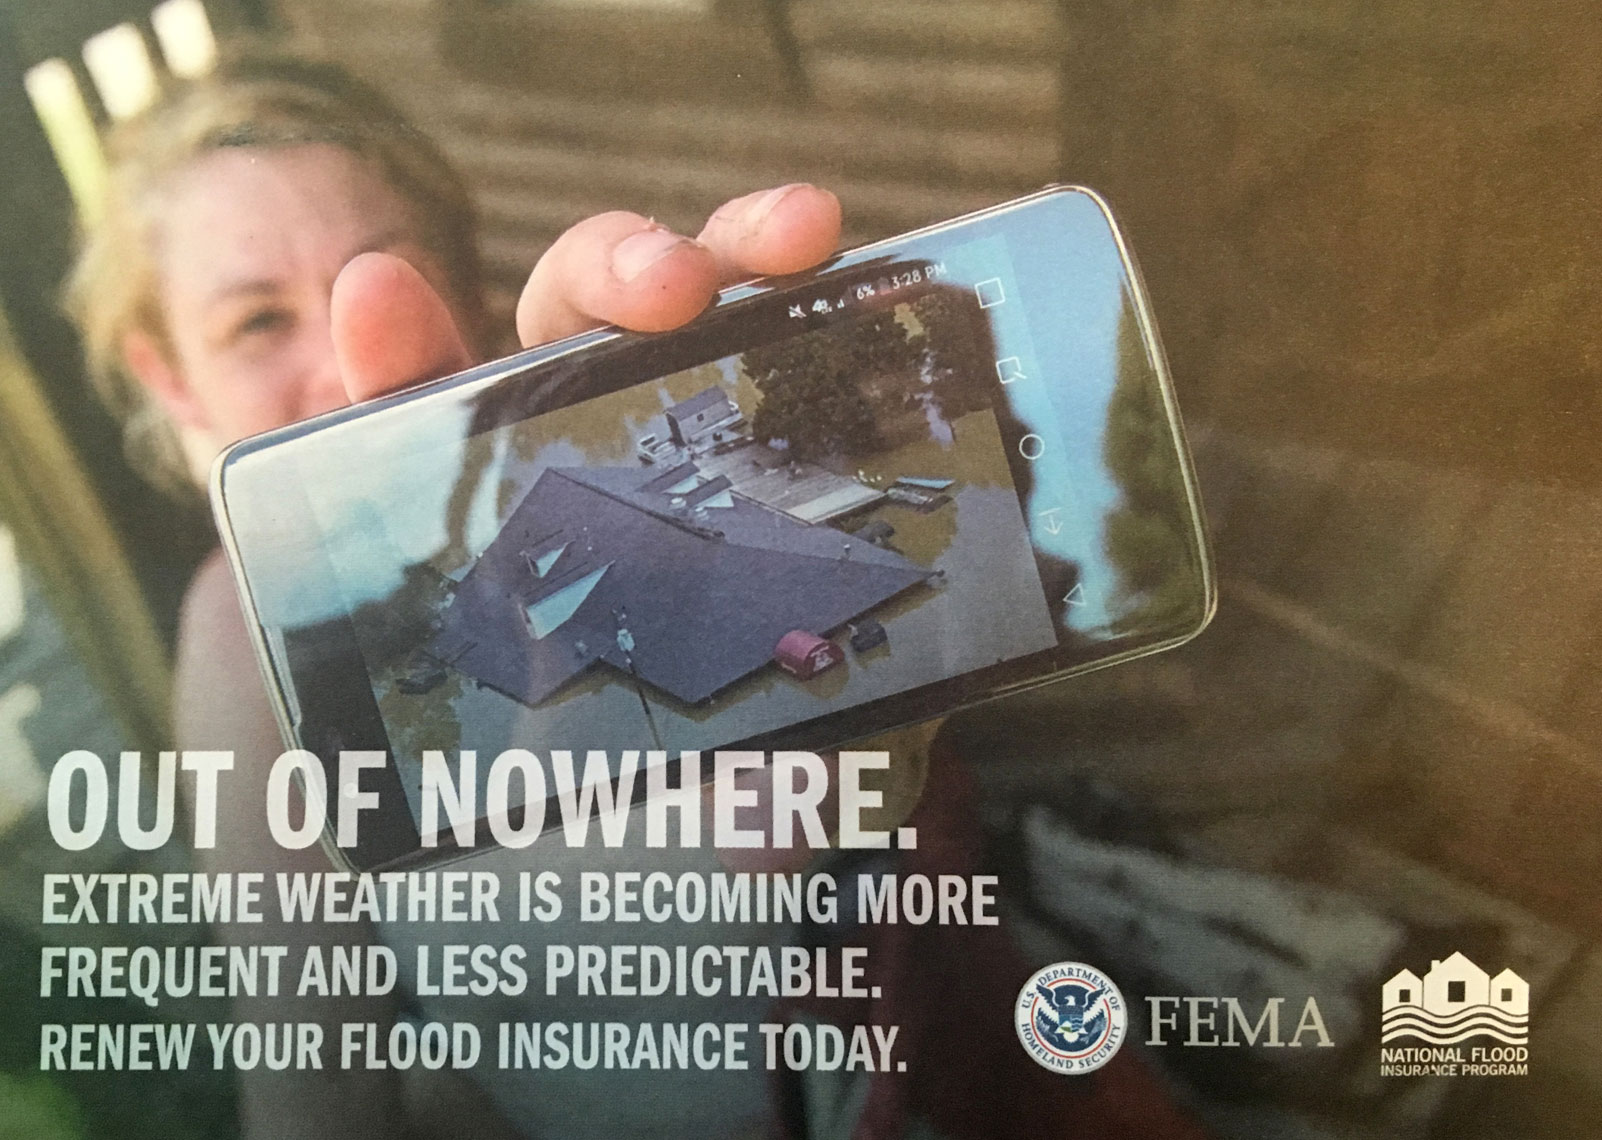 fema-flood-advertisement